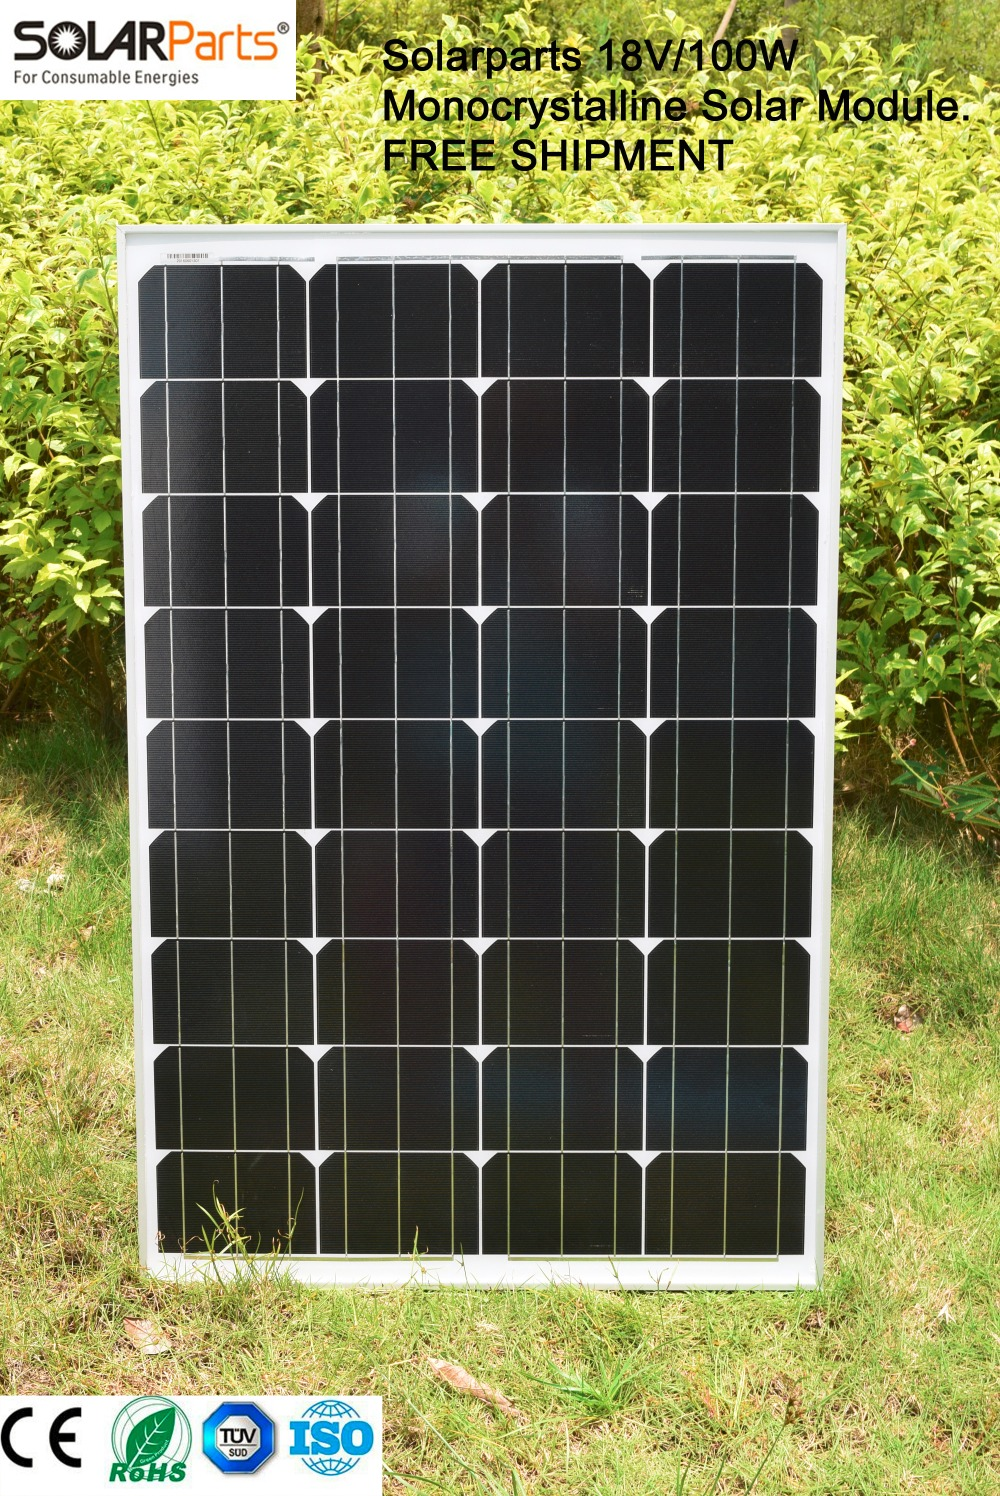 Solarparts 1x 100W Monocrystalline Solar Module by mono solar cell factory cheap selling 12V solar panel for RV/Marine/Boat use.